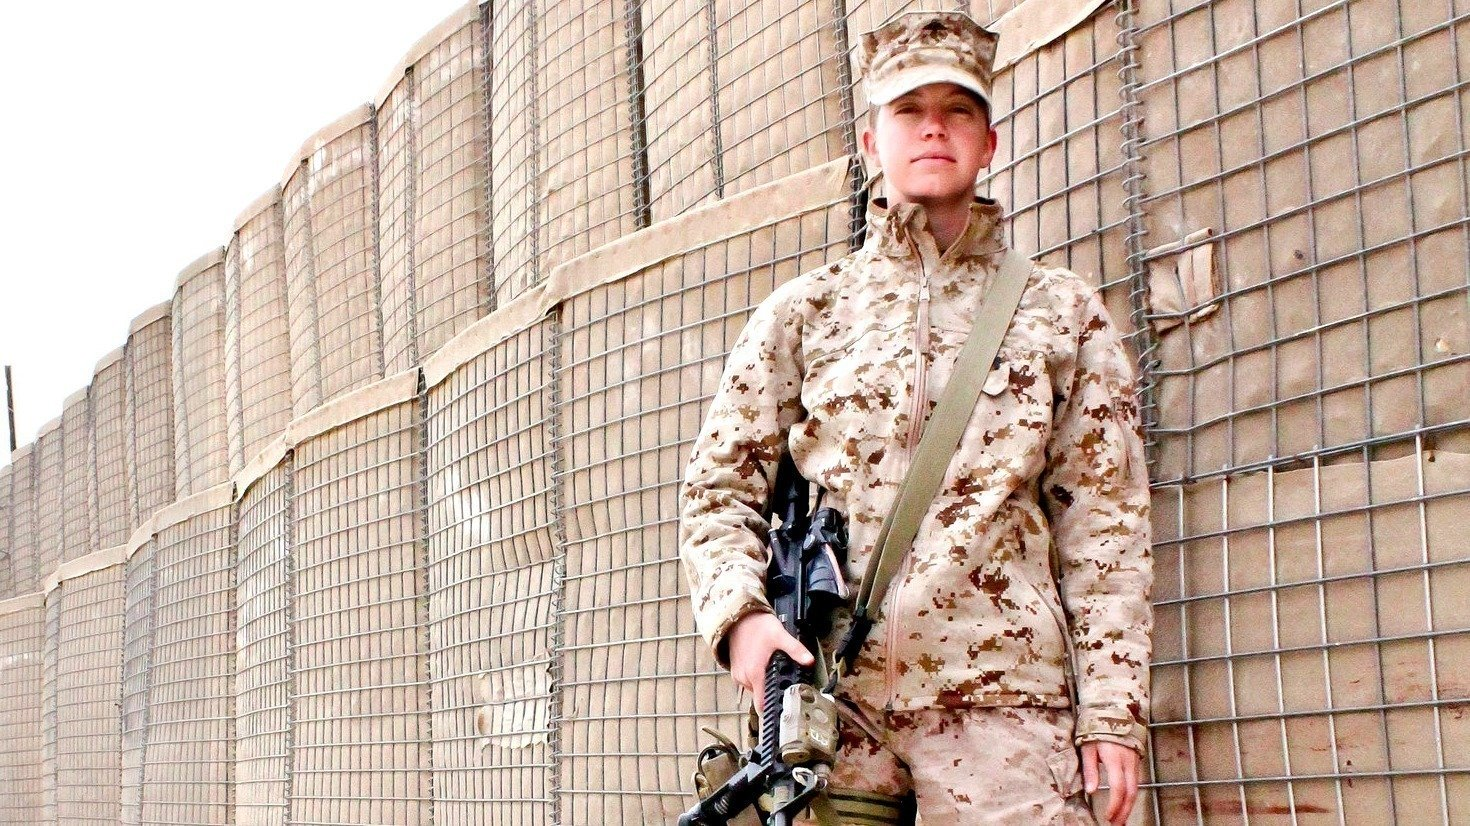 Women in the U.S. military and combat roles: Research roundup